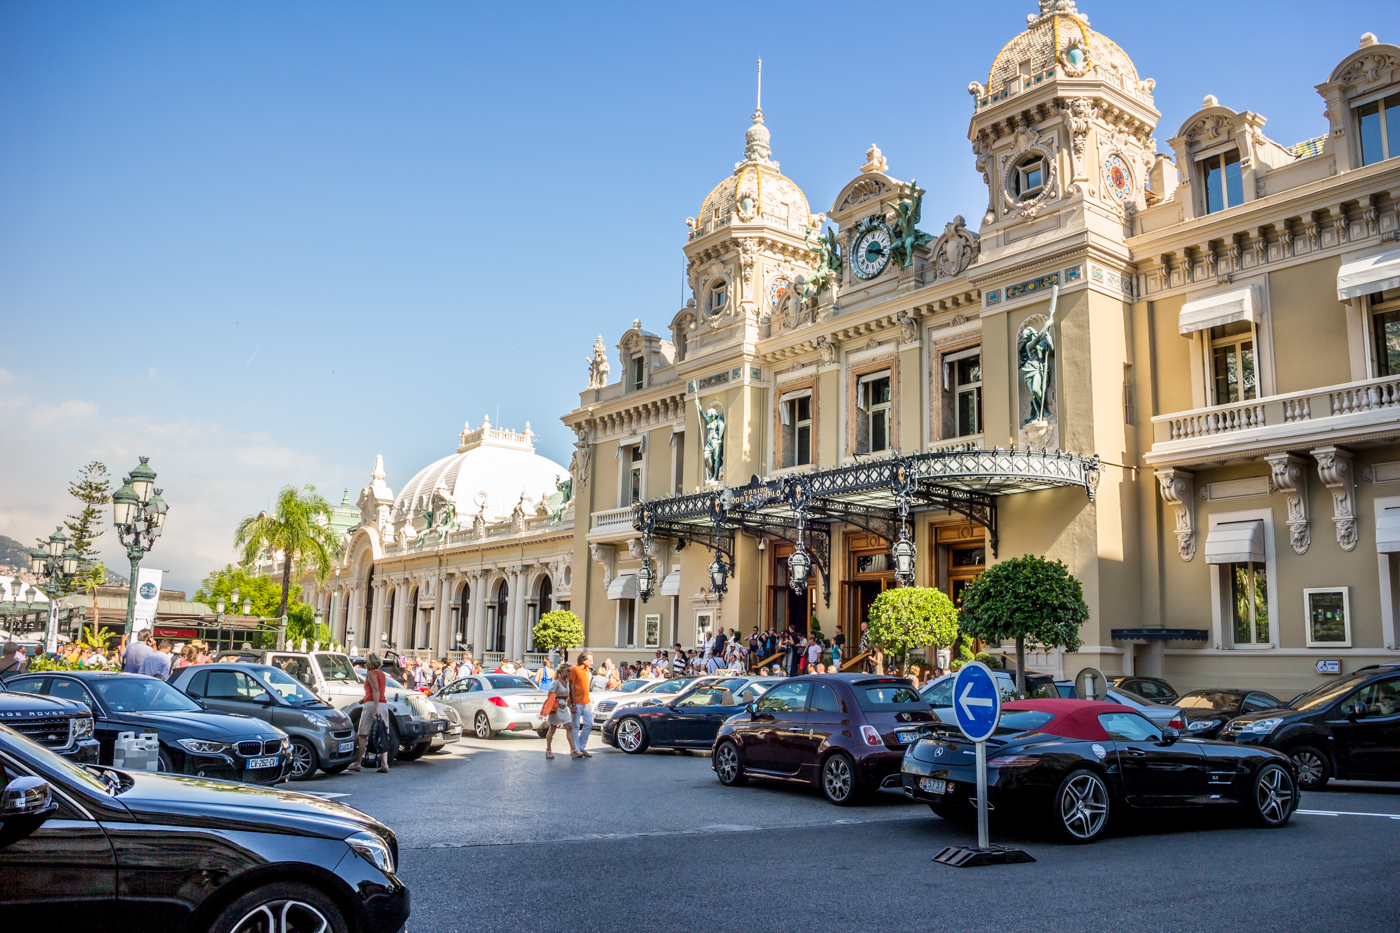 monte carlo casino free entry